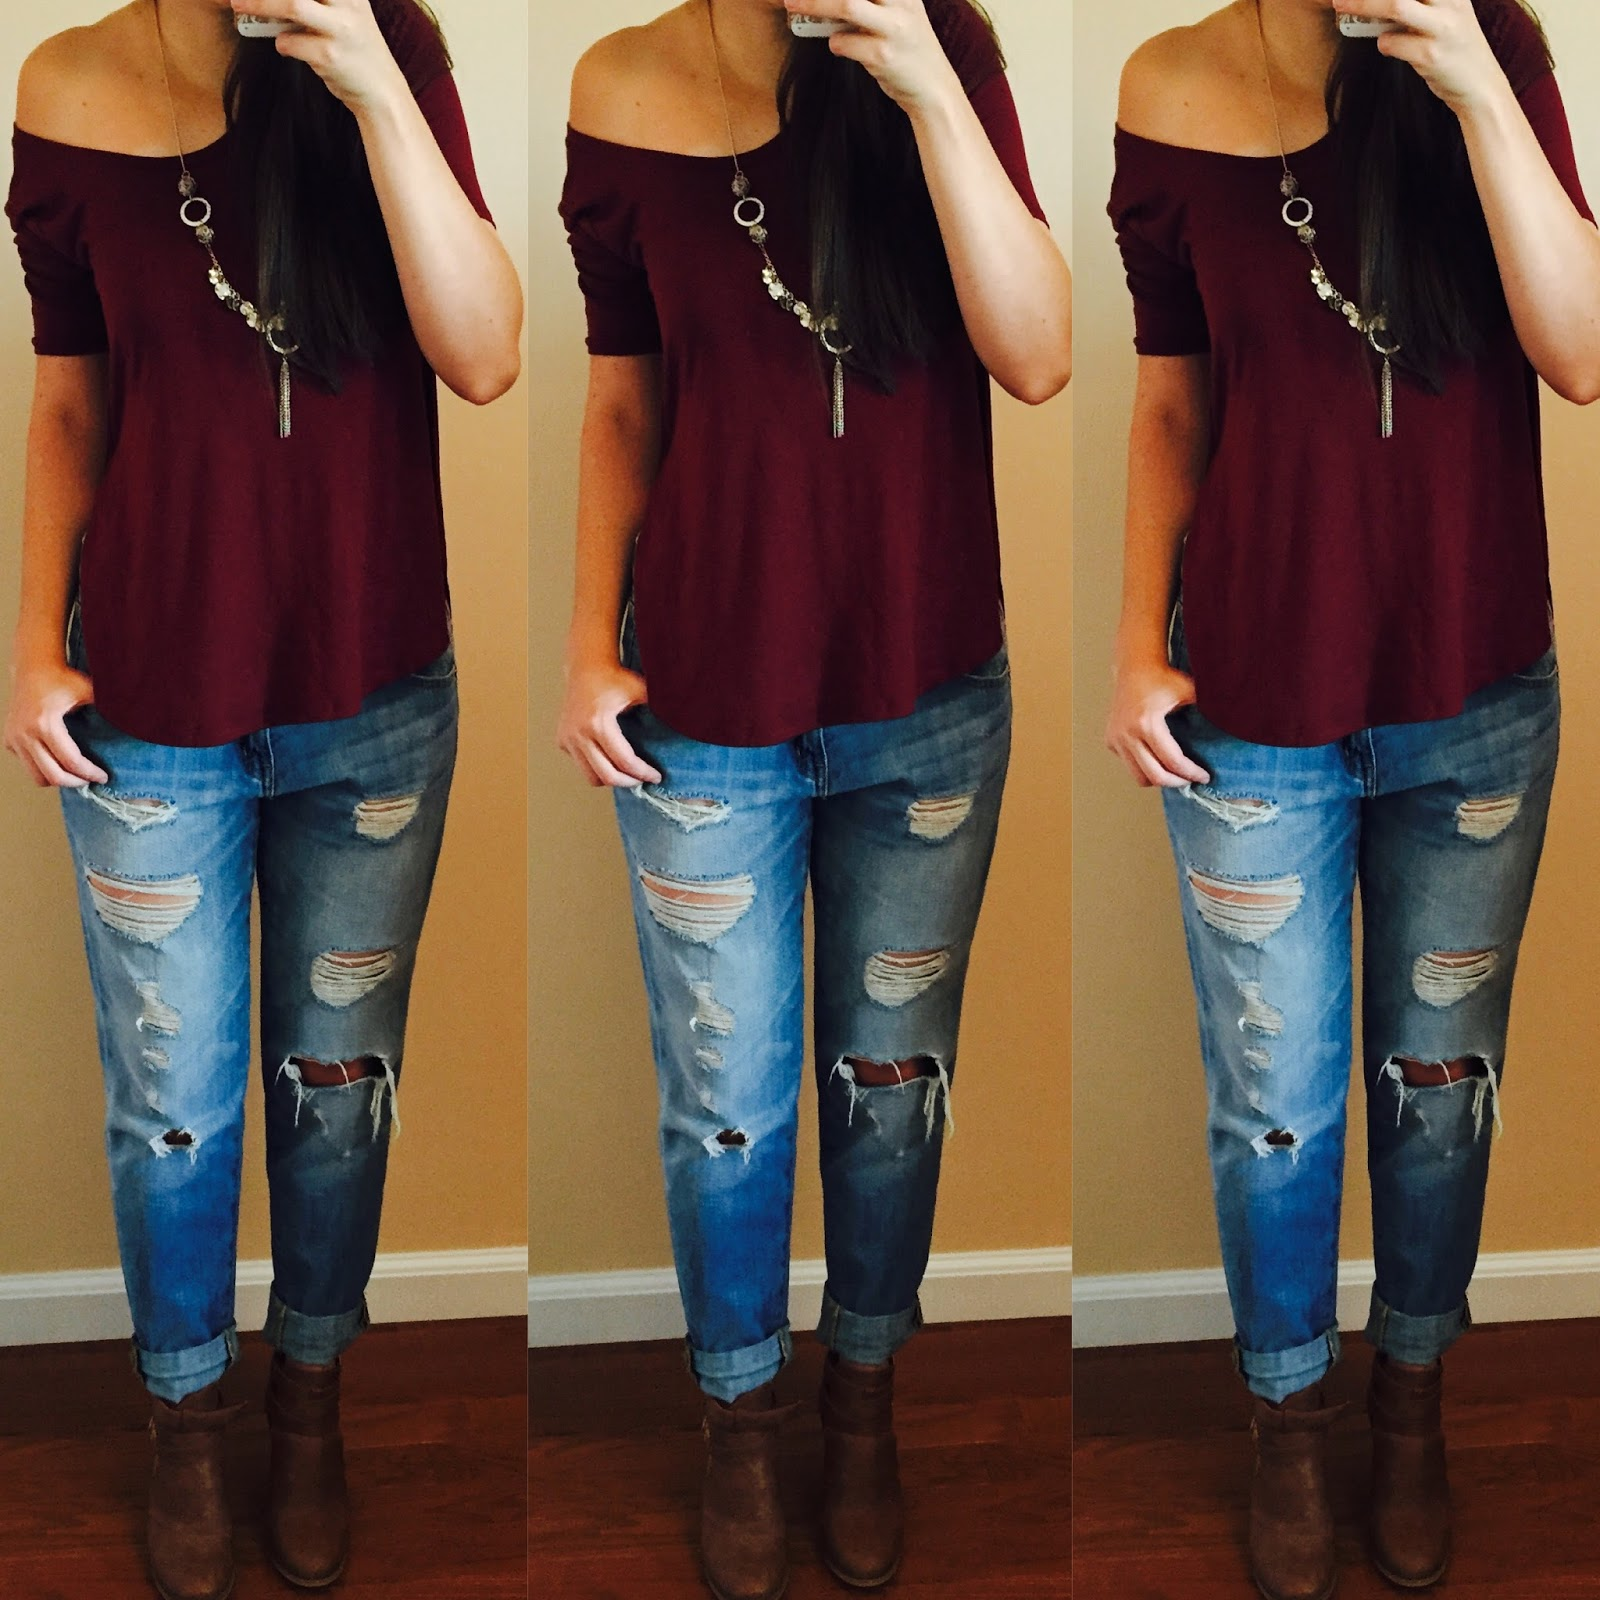 boyfriend jeans, how to style boyfriend jeans, how to style, How to style jeans, how to style target jeans, skinny jeans, target denim, what to wear with boyfriend jeans, what to wear with skinny jeans,